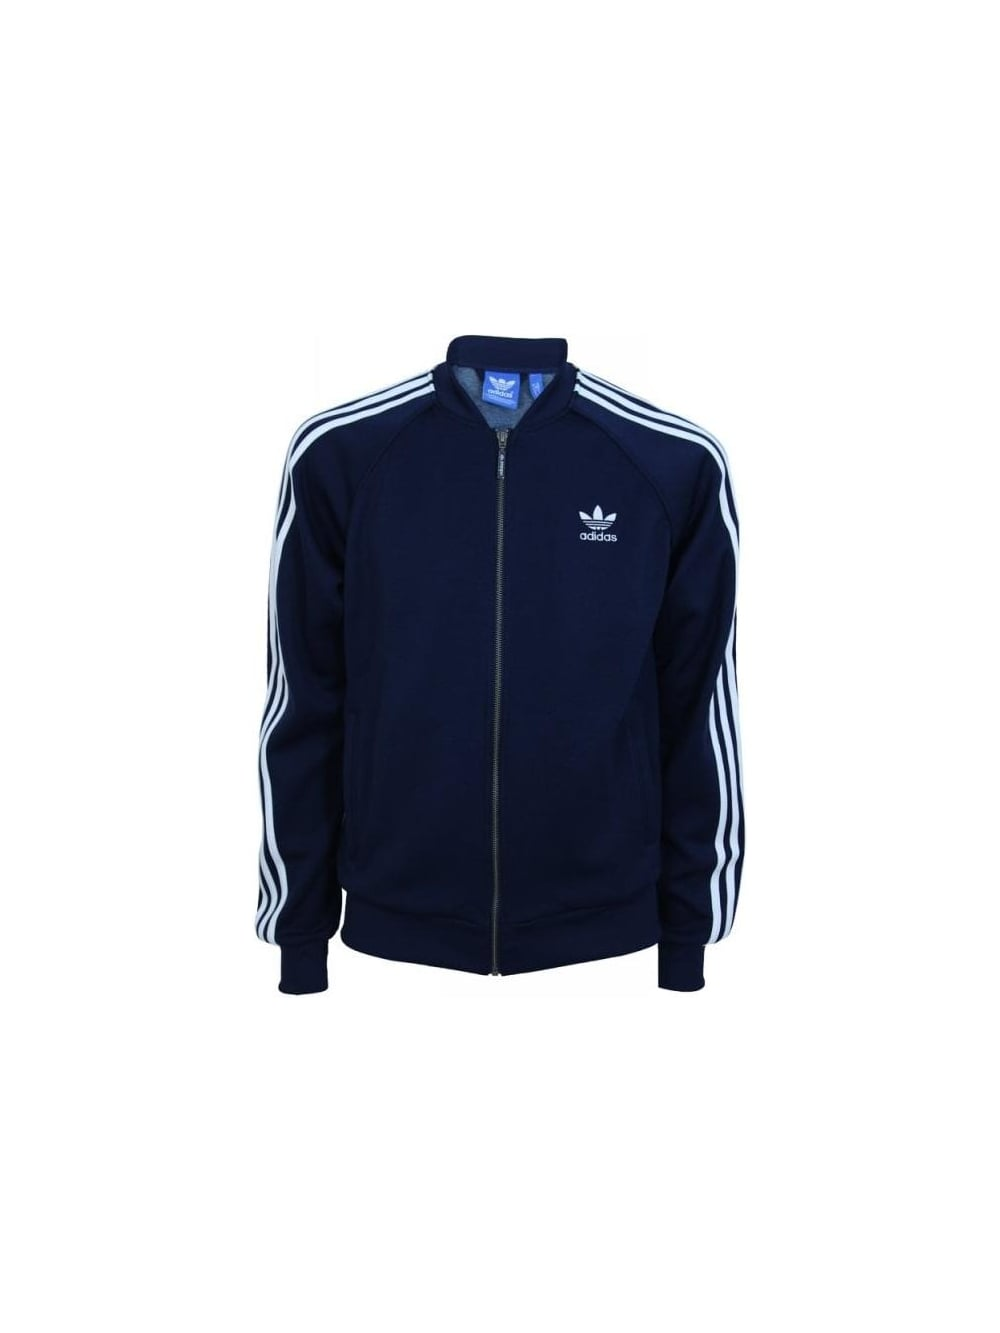 Adidas Superstar Track Top in Navy - Northern Threads 6ae46fcf90e1